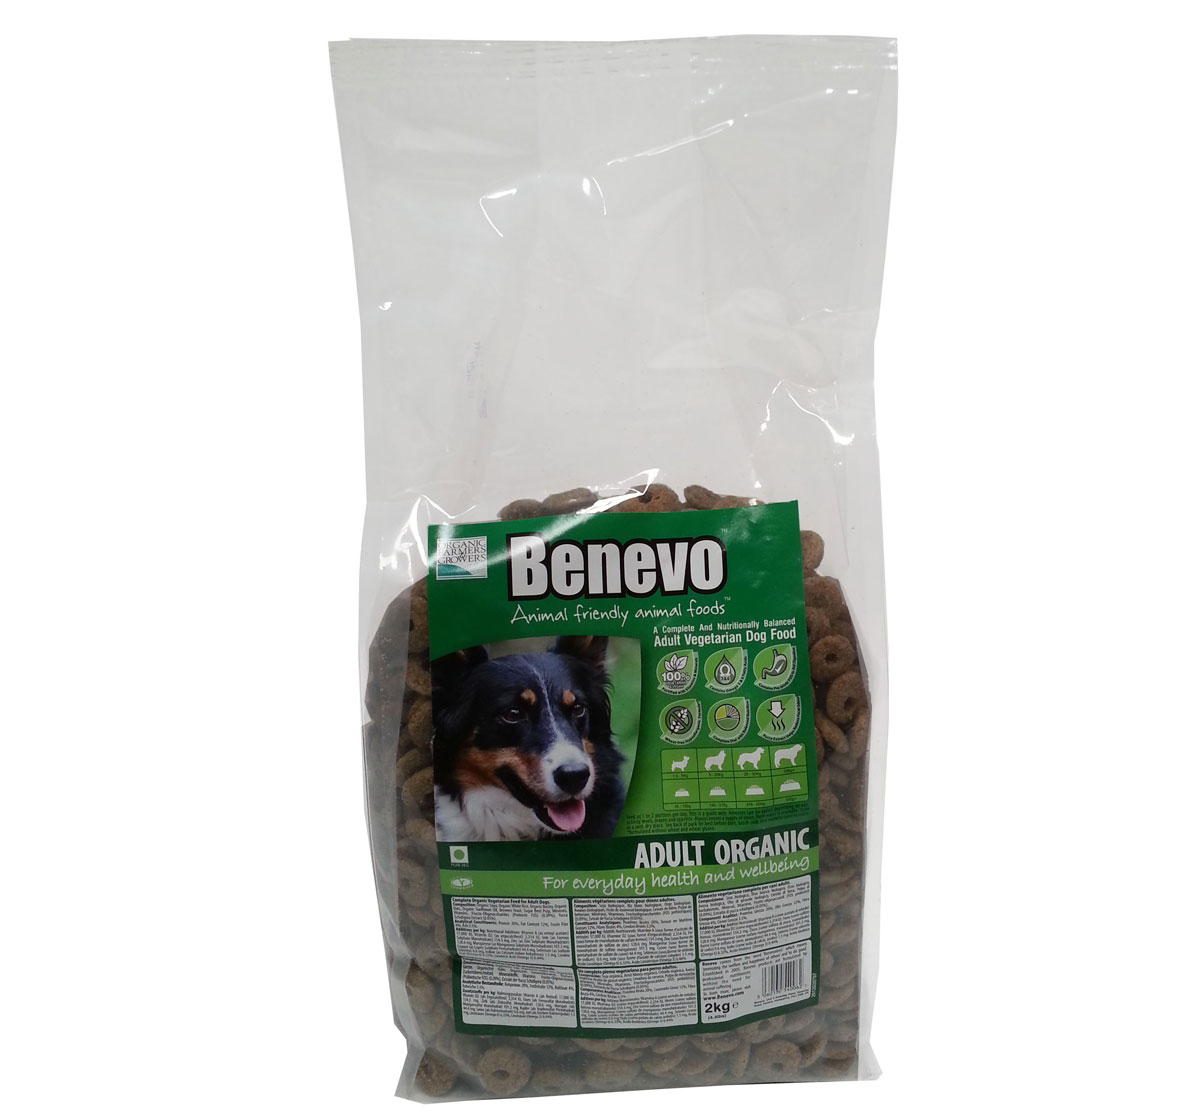 Benevo Vegetarian Organic Adult Dog Food - 2kg